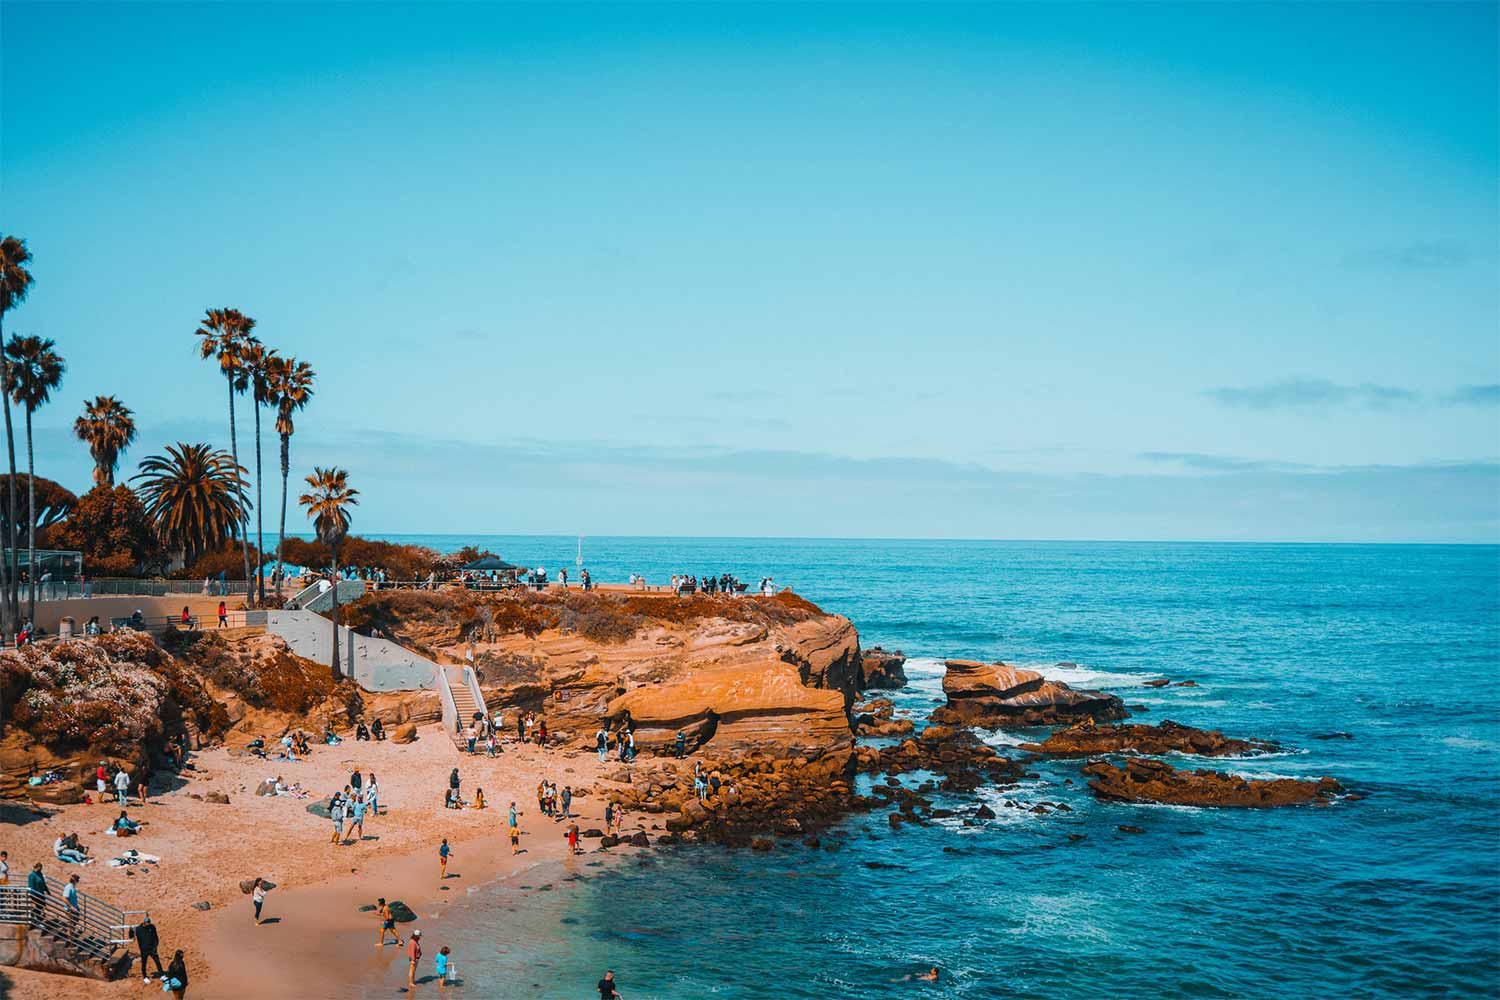 People on a Beach in San Diego